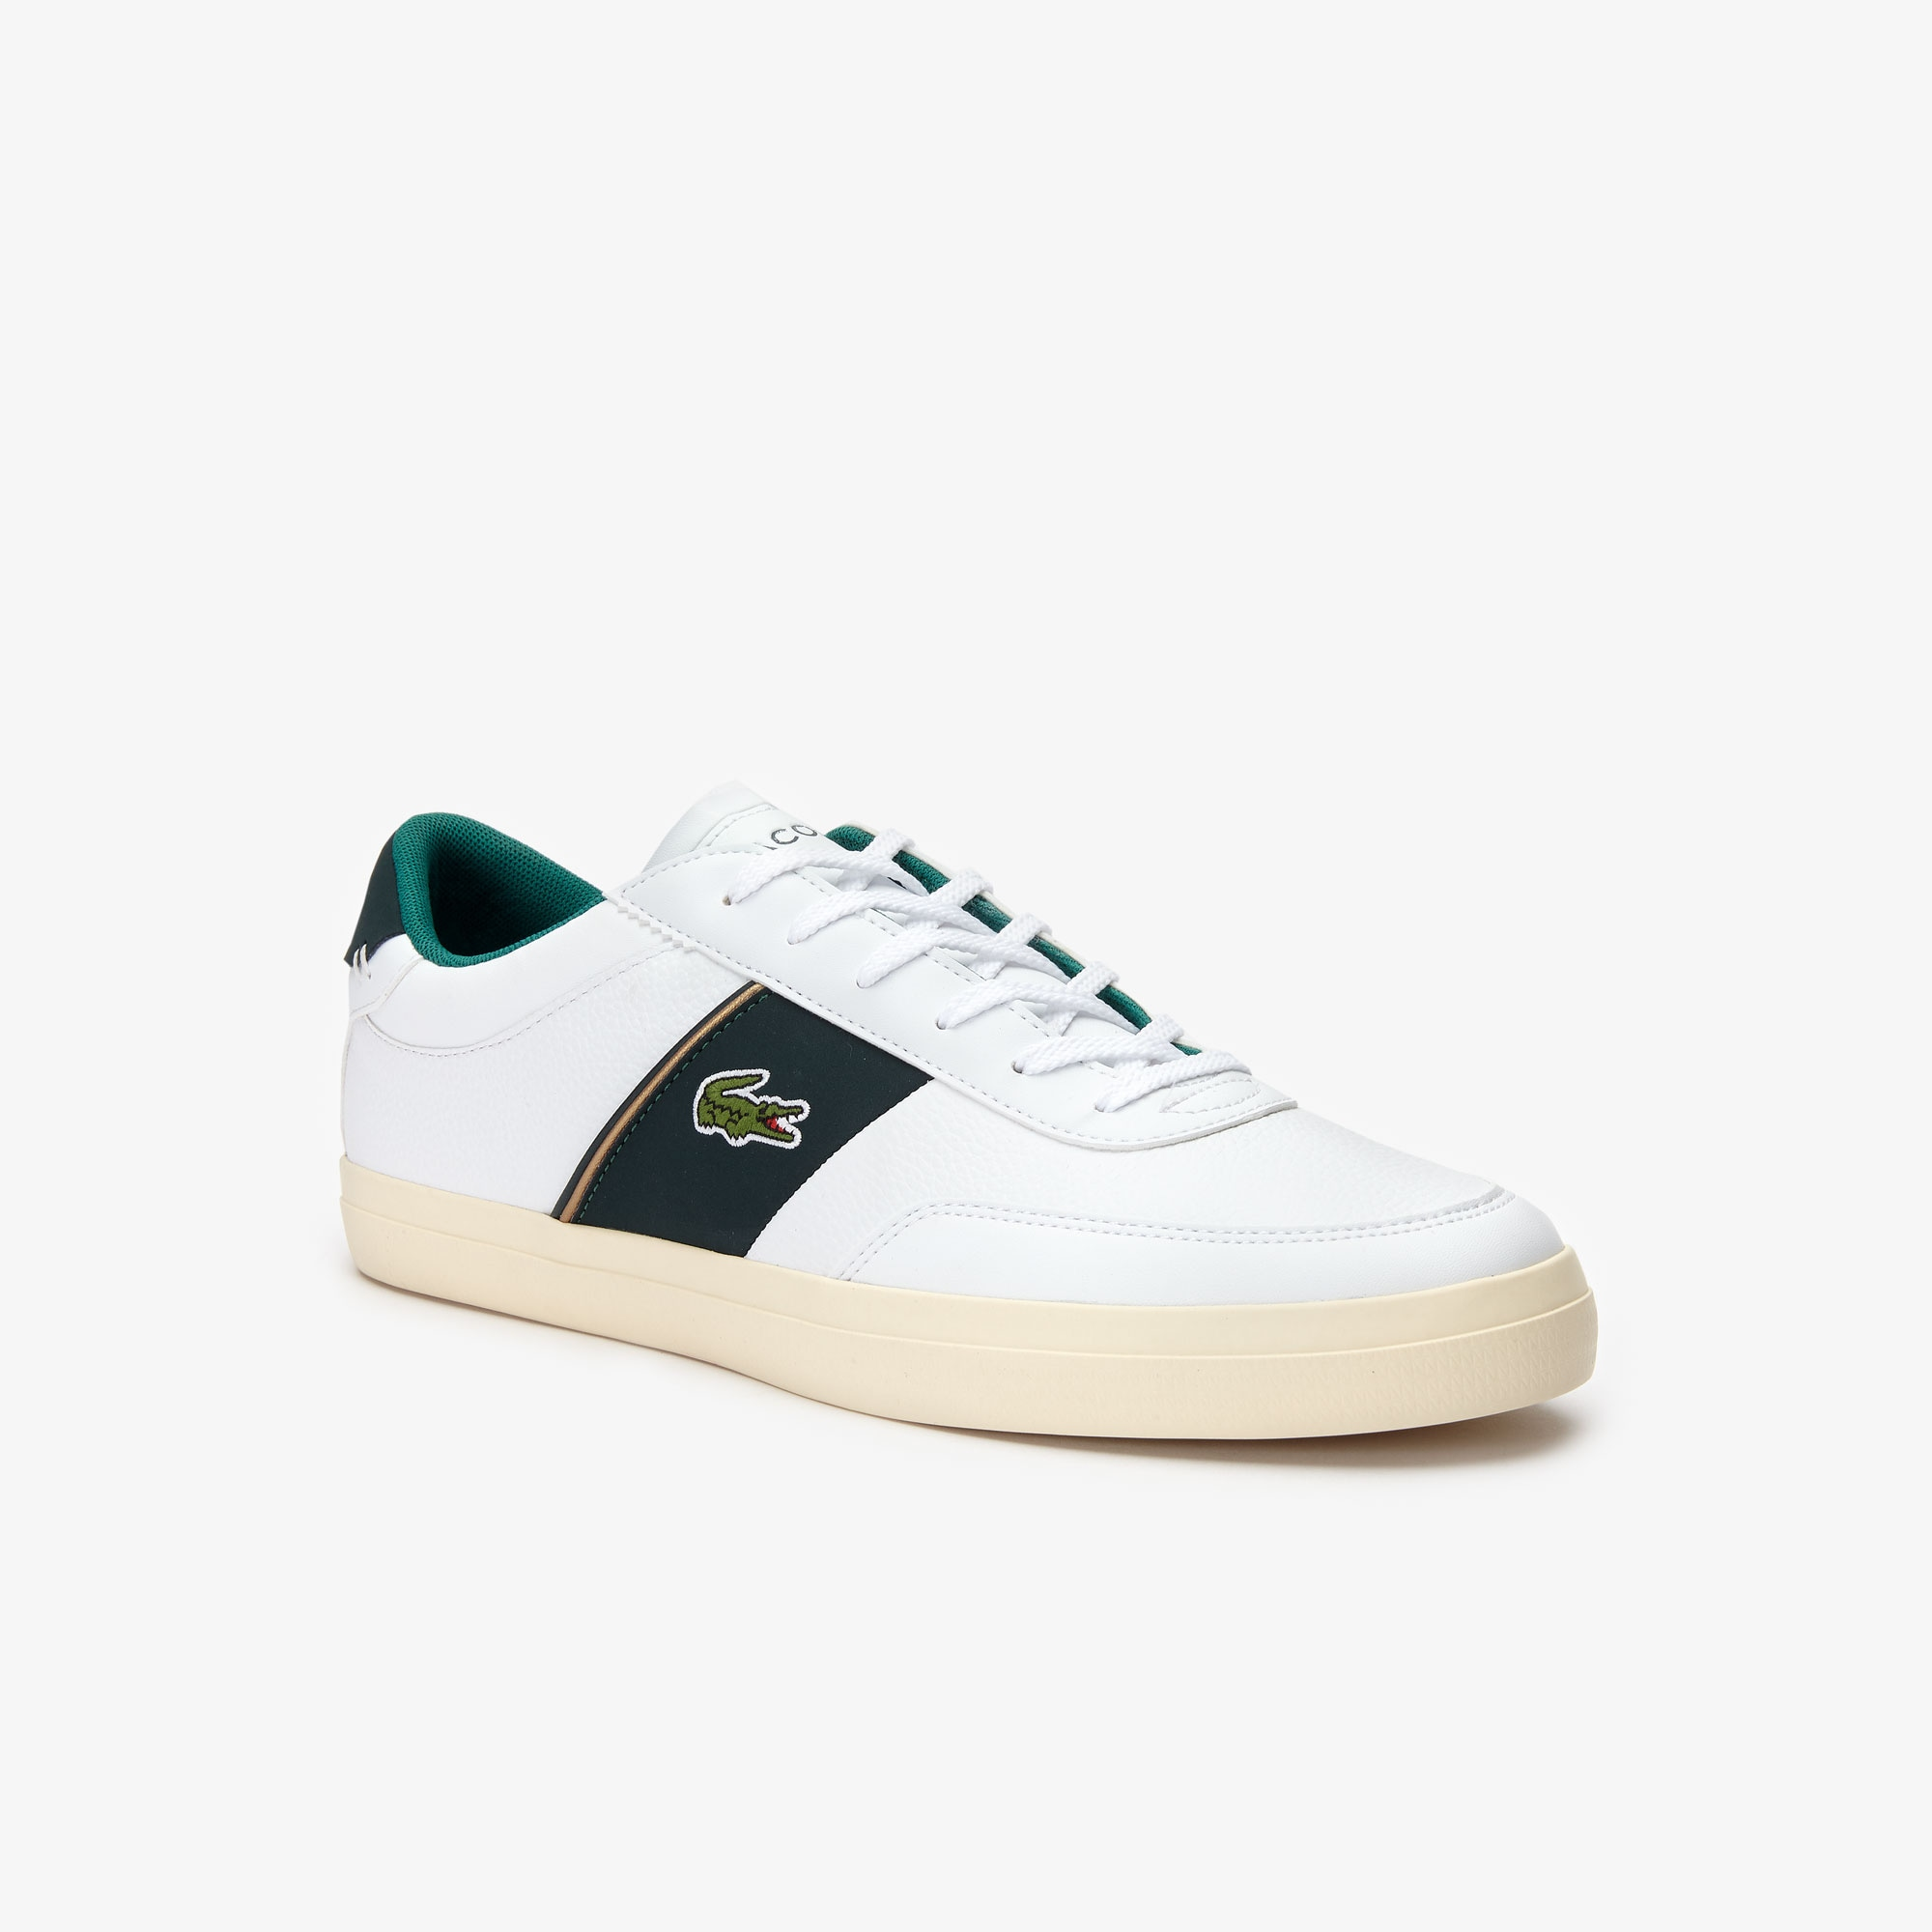 5d93b08d87658 Chaussures homme | Collection Homme | LACOSTE